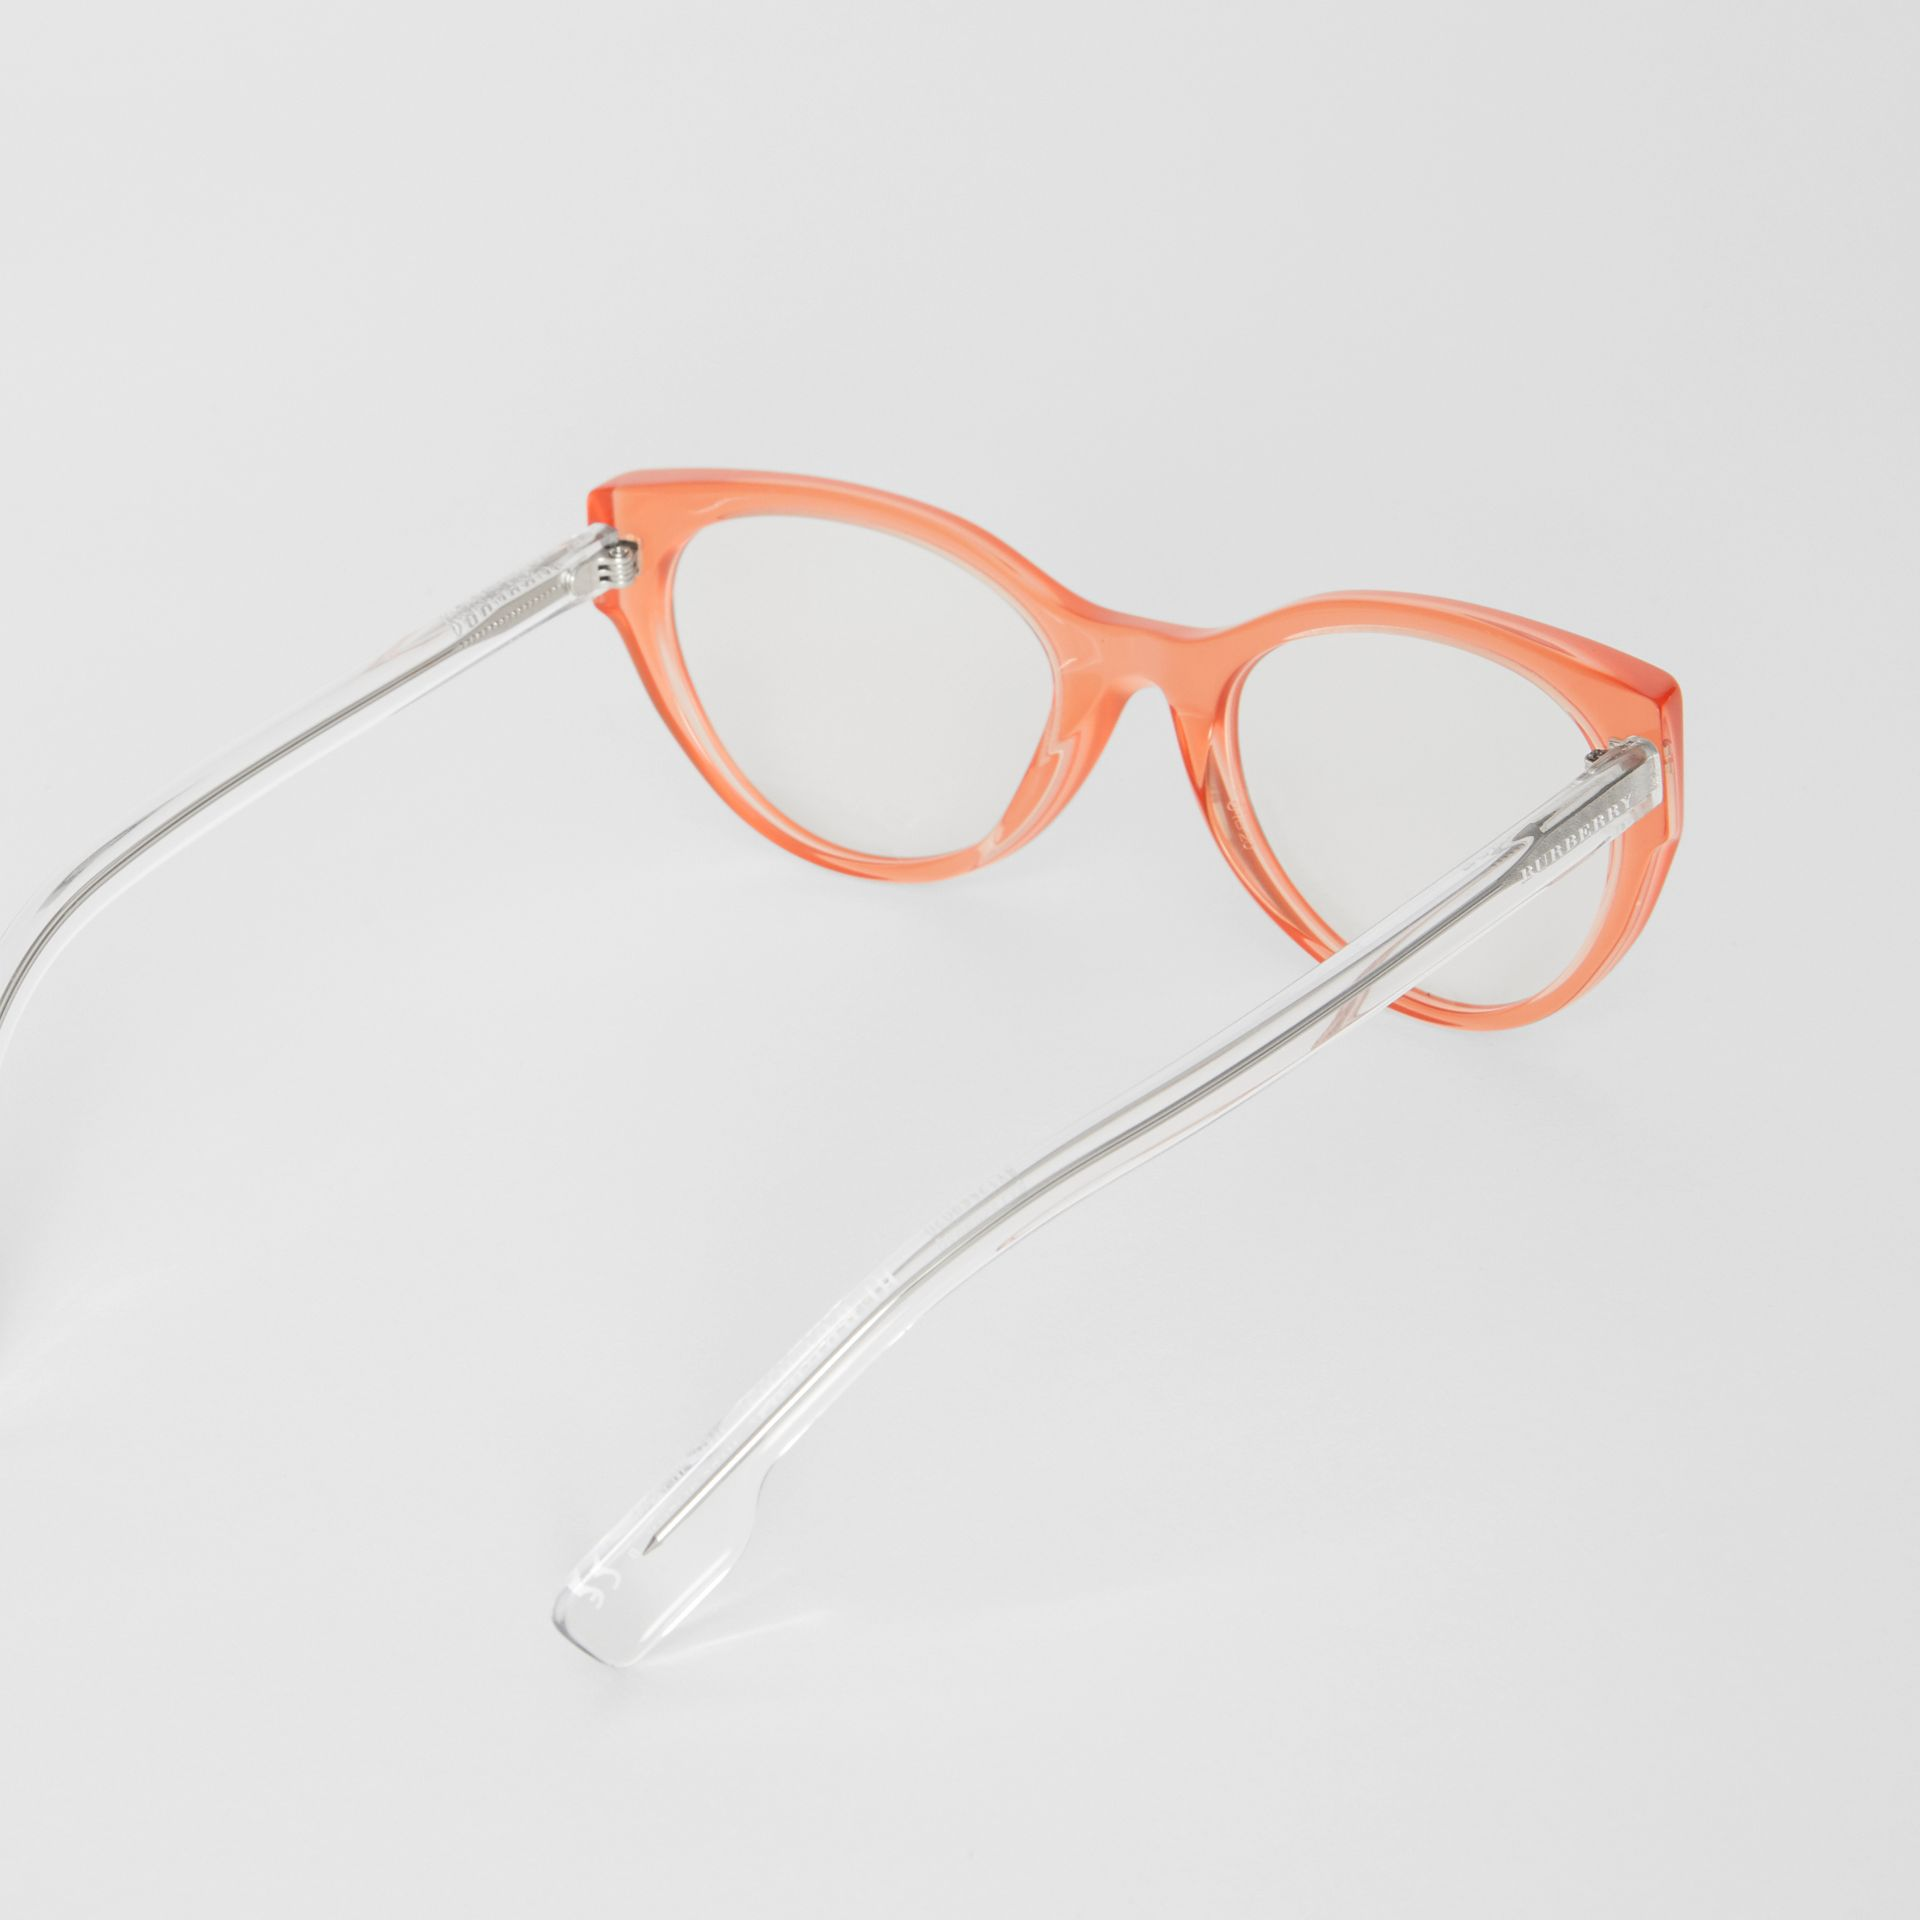 Cat-eye Optical Frames in Peach - Women | Burberry Australia - gallery image 4